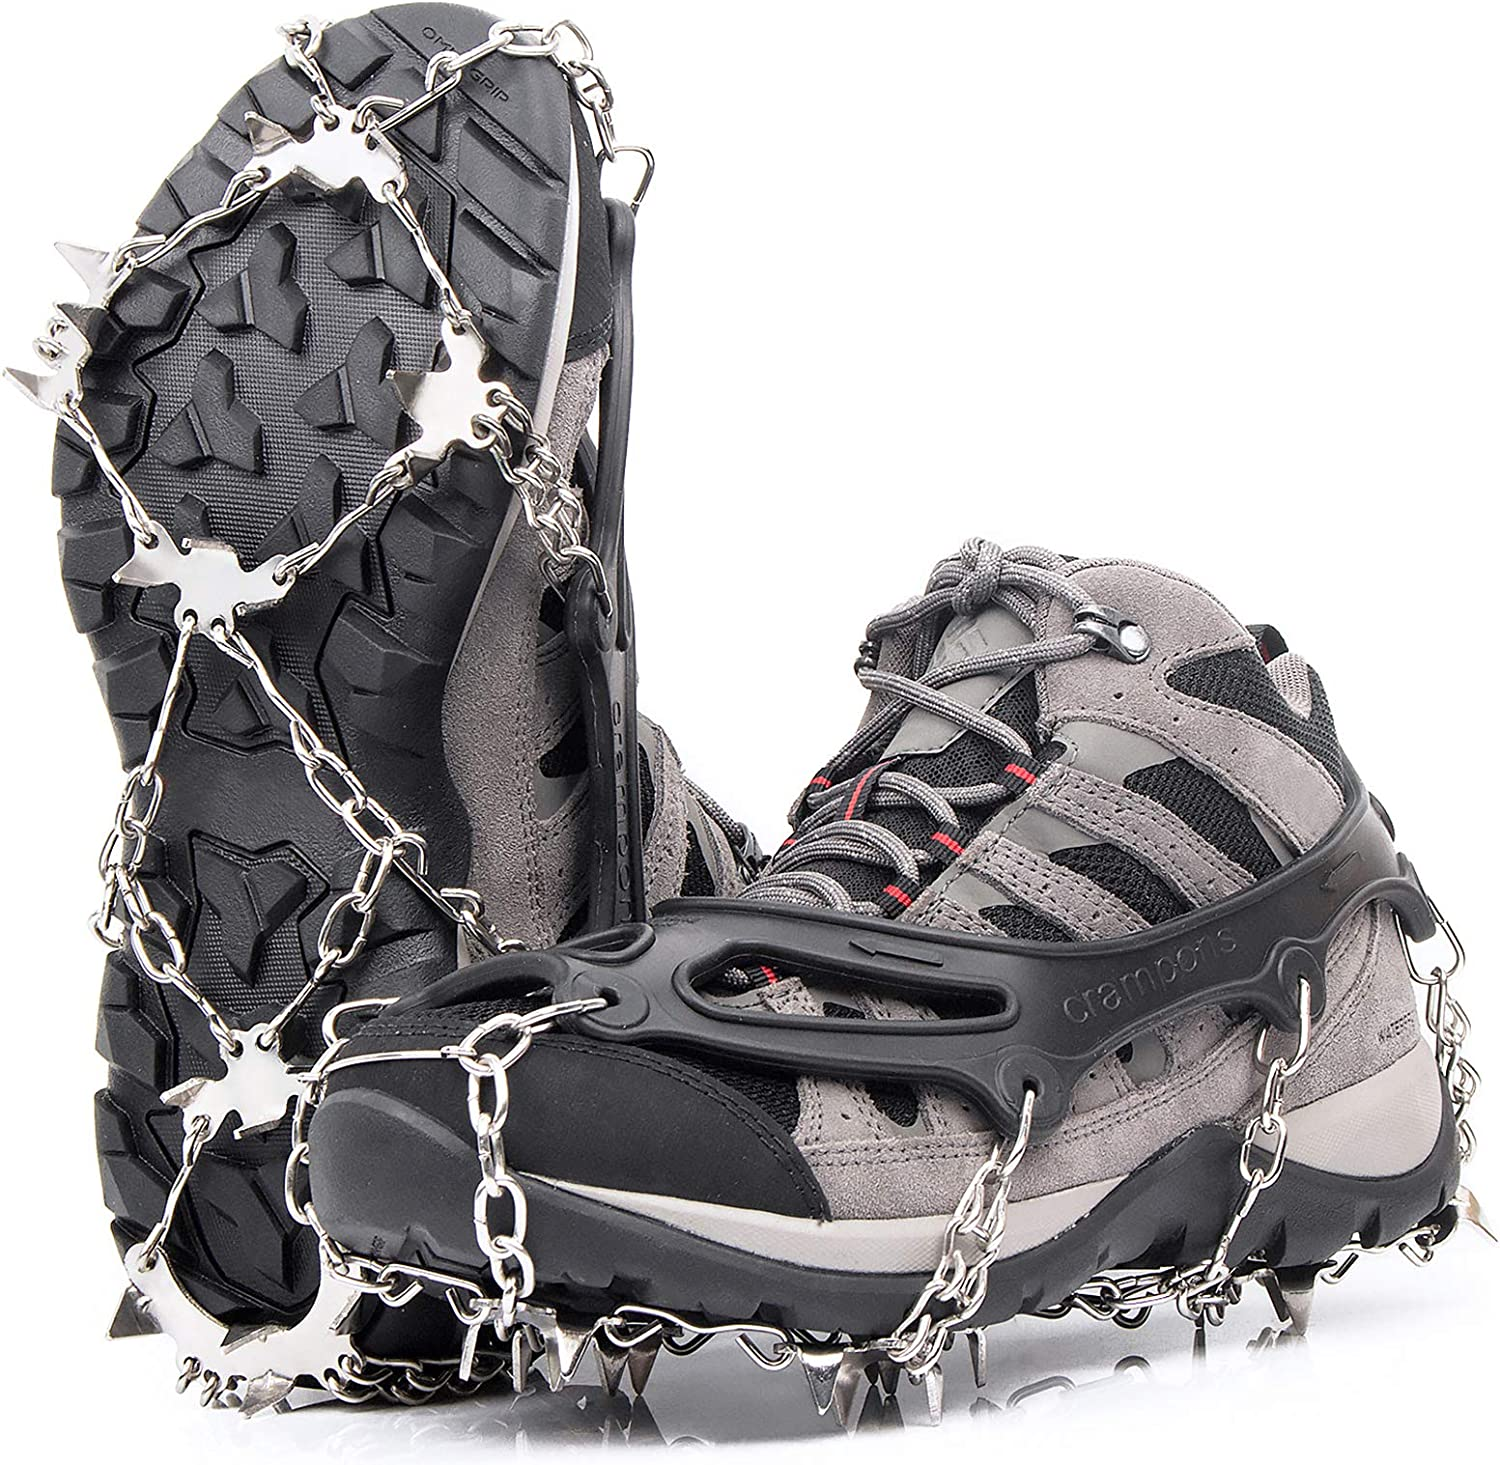 Greatever Detroit Mall Crampons for Hiking Boots Gr Cleats Traction Recommended Ice Snow